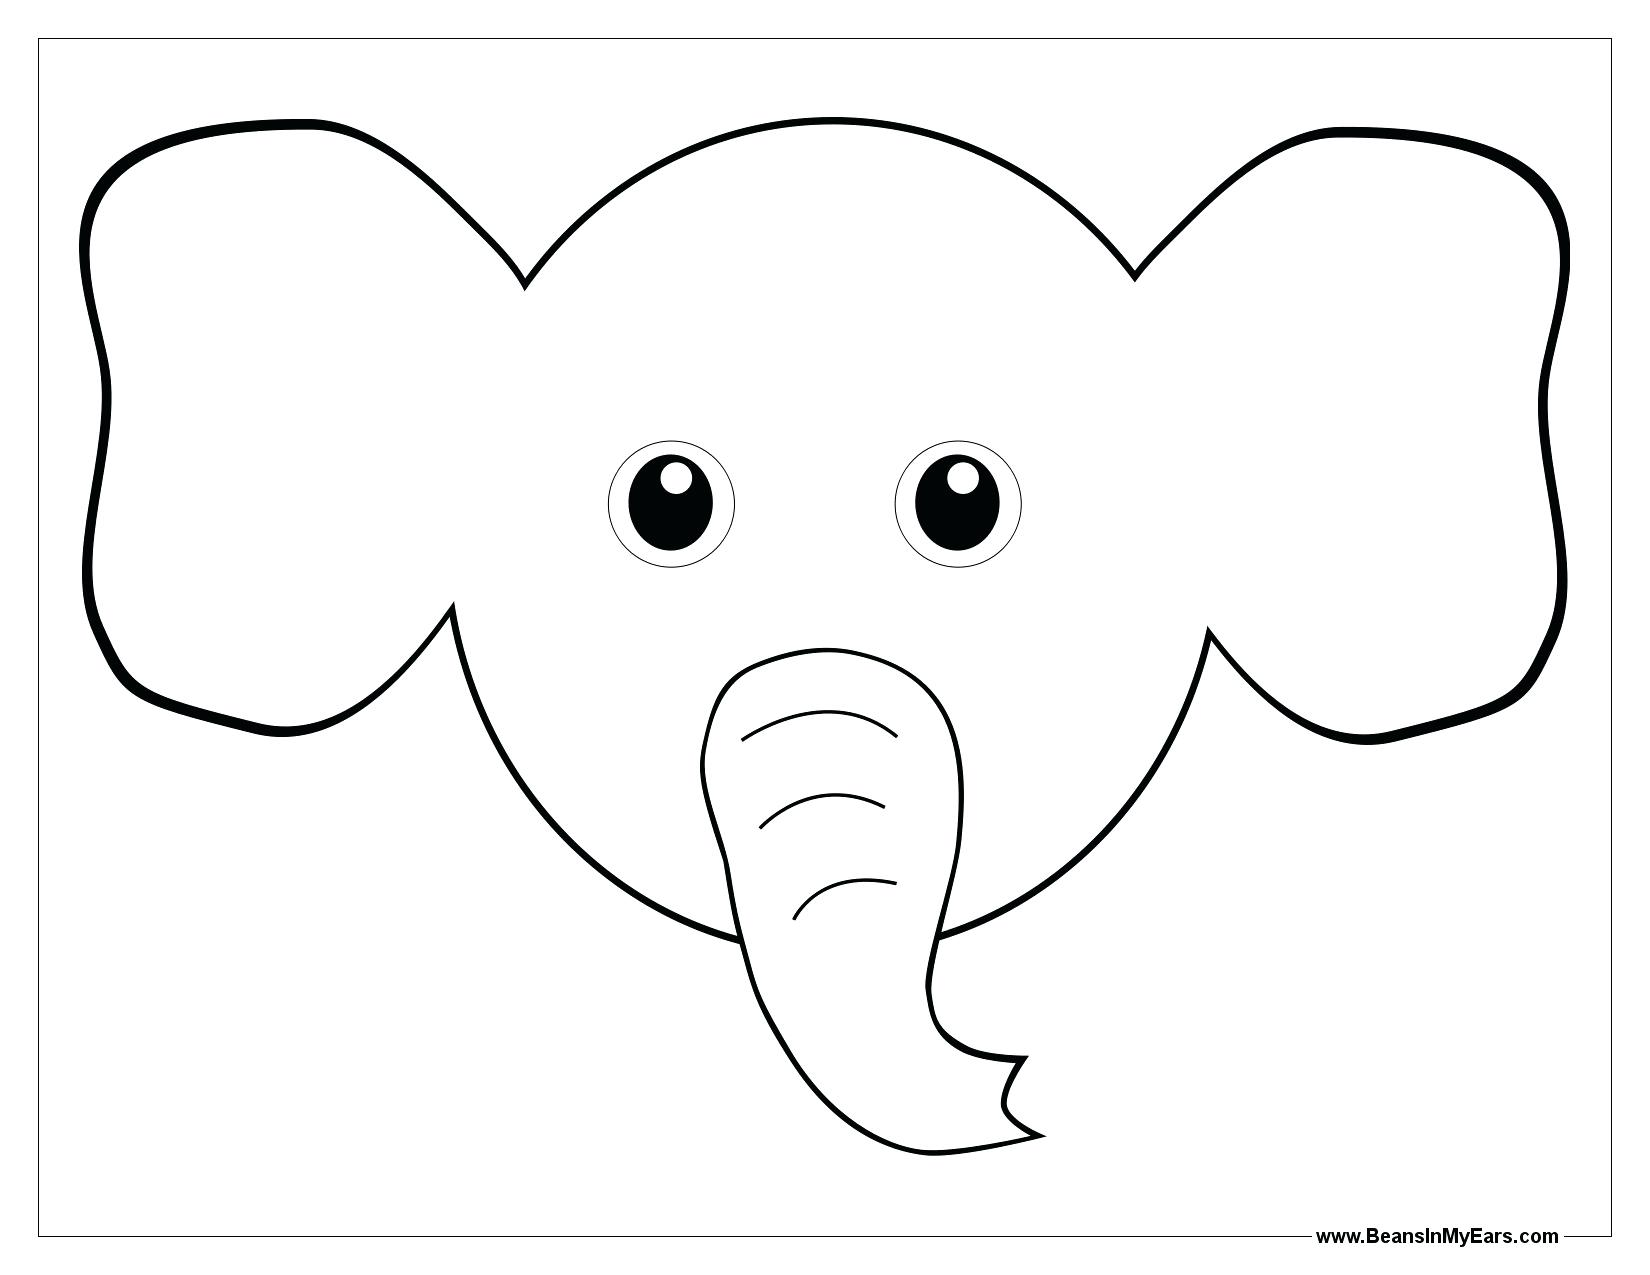 1650x1275 Bunny Ears Coloring Page